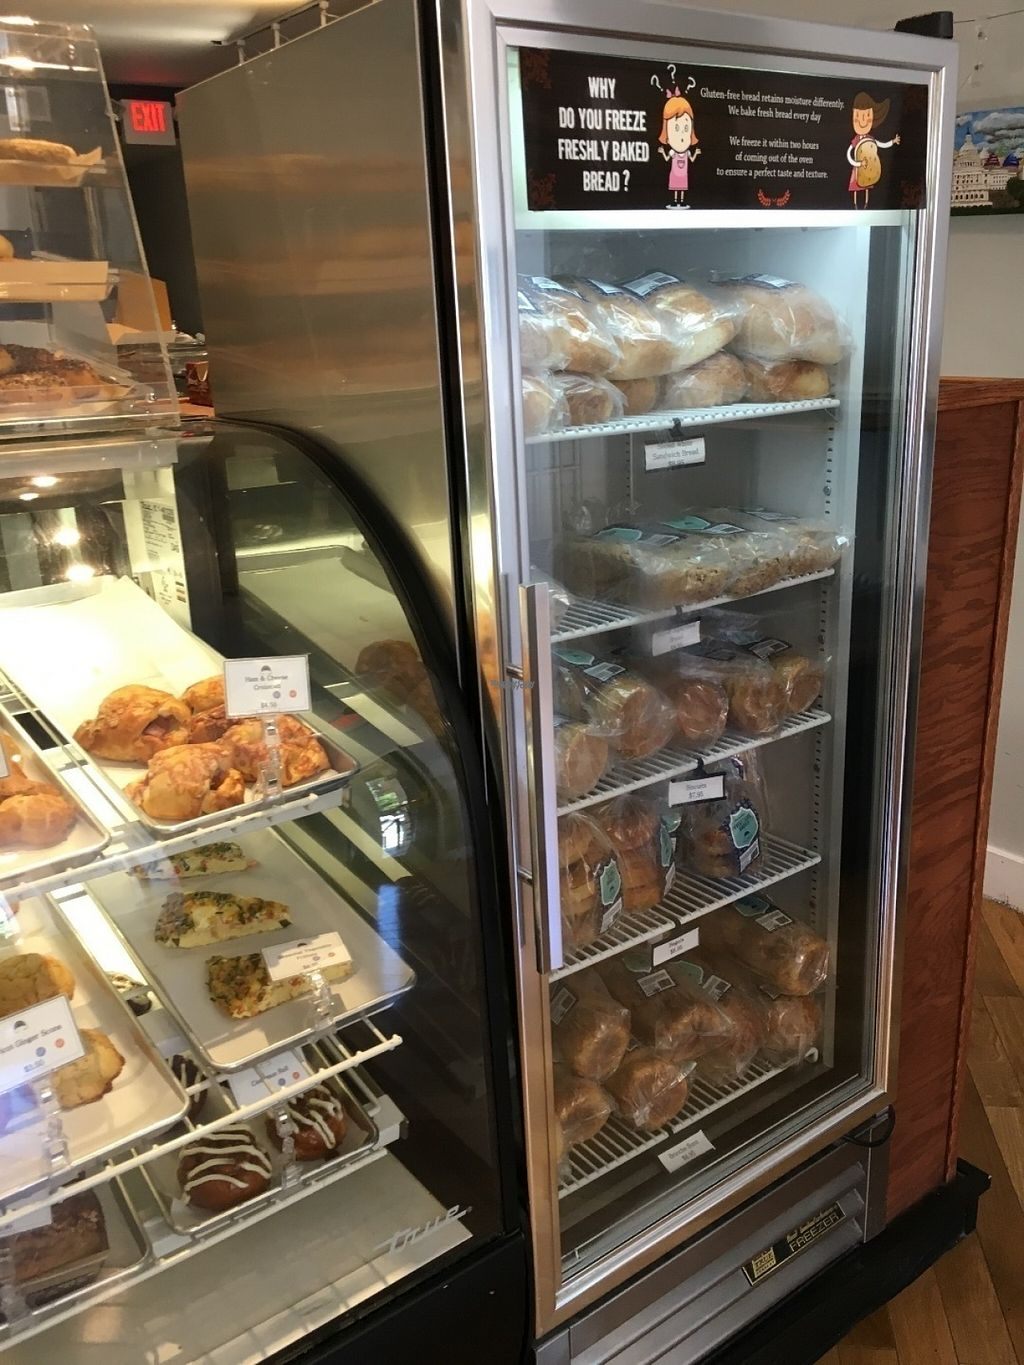 """Photo of Rise Bakery  by <a href=""""/members/profile/cookiem"""">cookiem</a> <br/>Freezer and breakfast items <br/> August 16, 2016  - <a href='/contact/abuse/image/57276/169301'>Report</a>"""